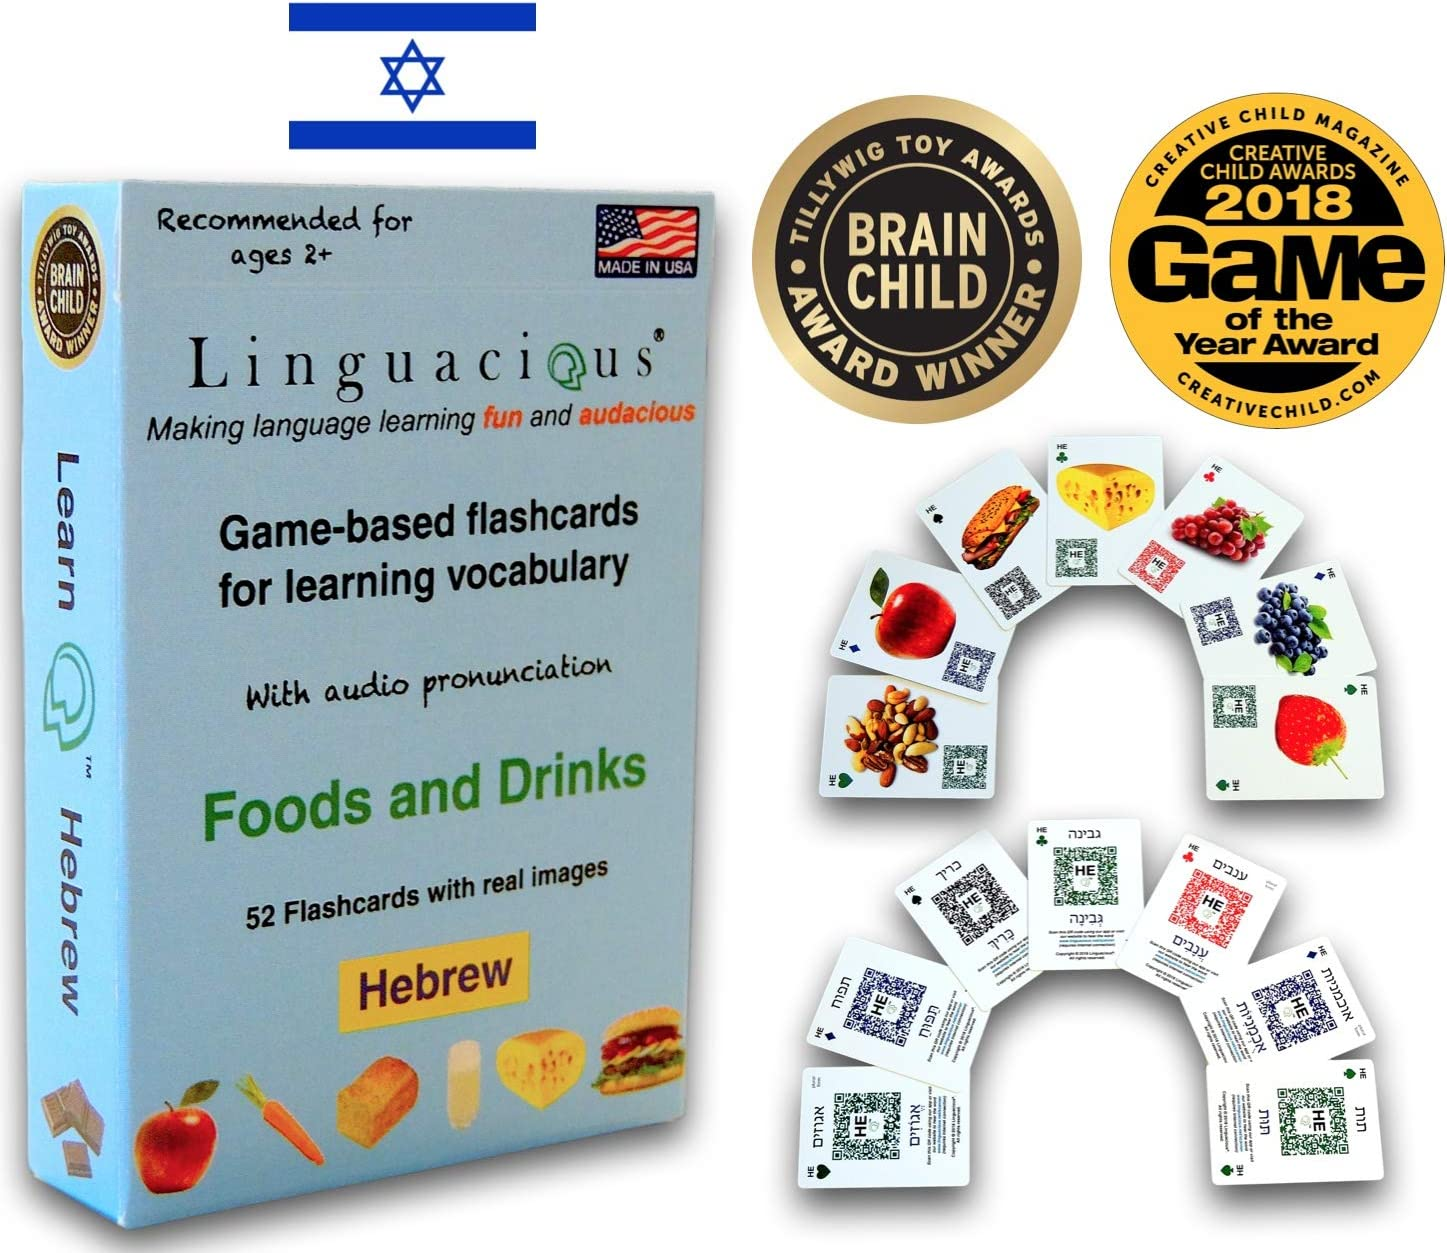 Linguacious Award-Winning Hebrew Foods and Drinks Flashcard Game - with Audio!